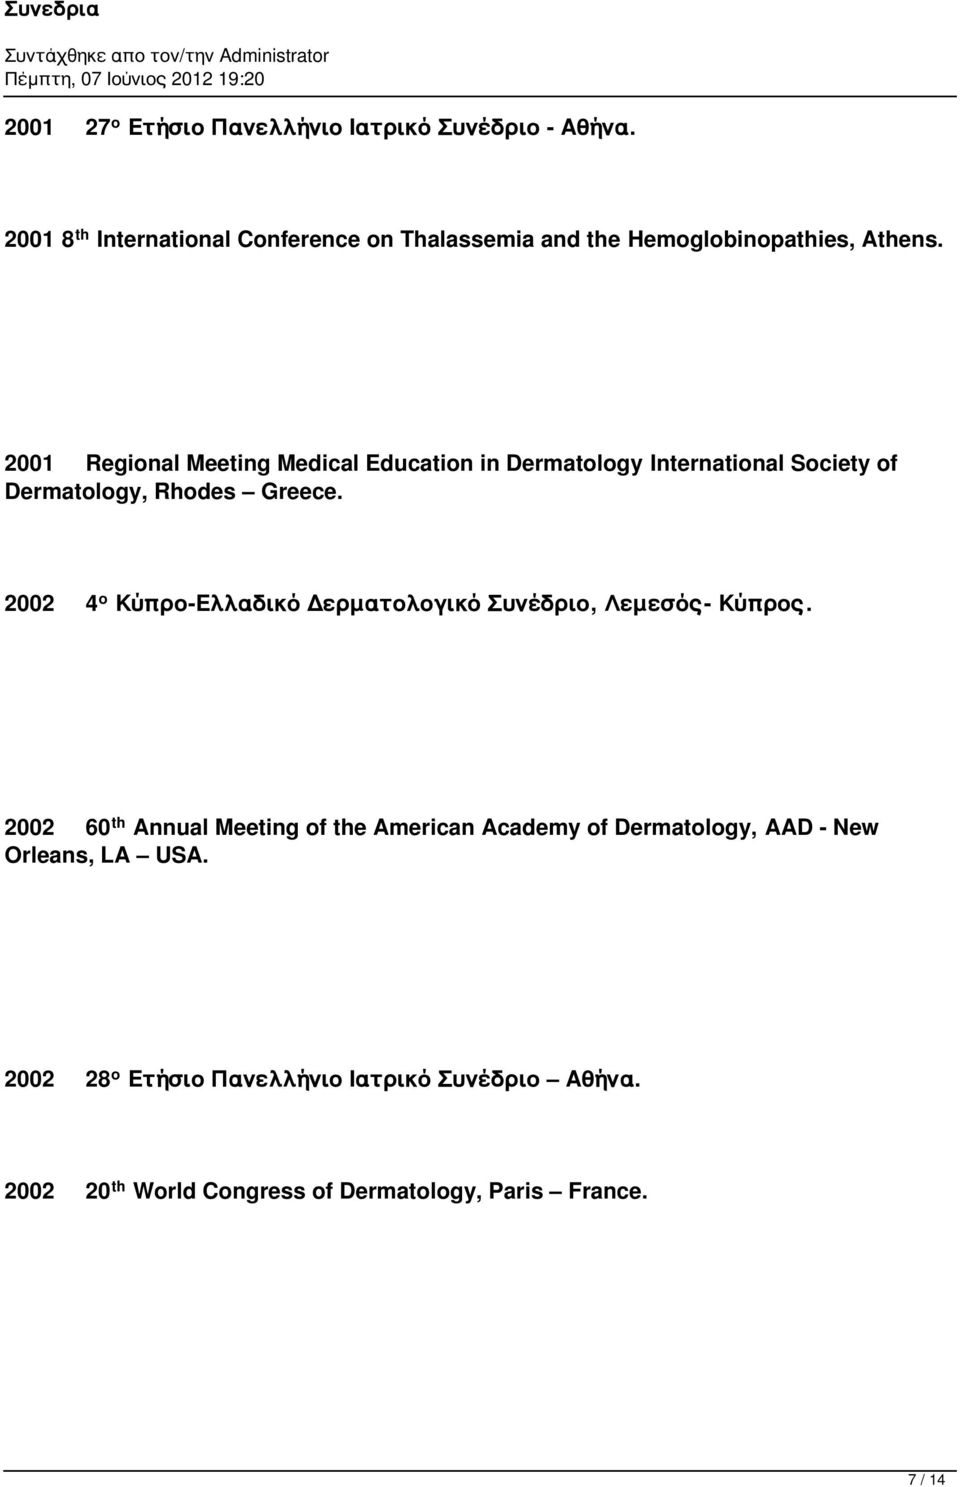 2001 Regional Meeting Medical Education in Dermatology International Society of Dermatology, Rhodes Greece.